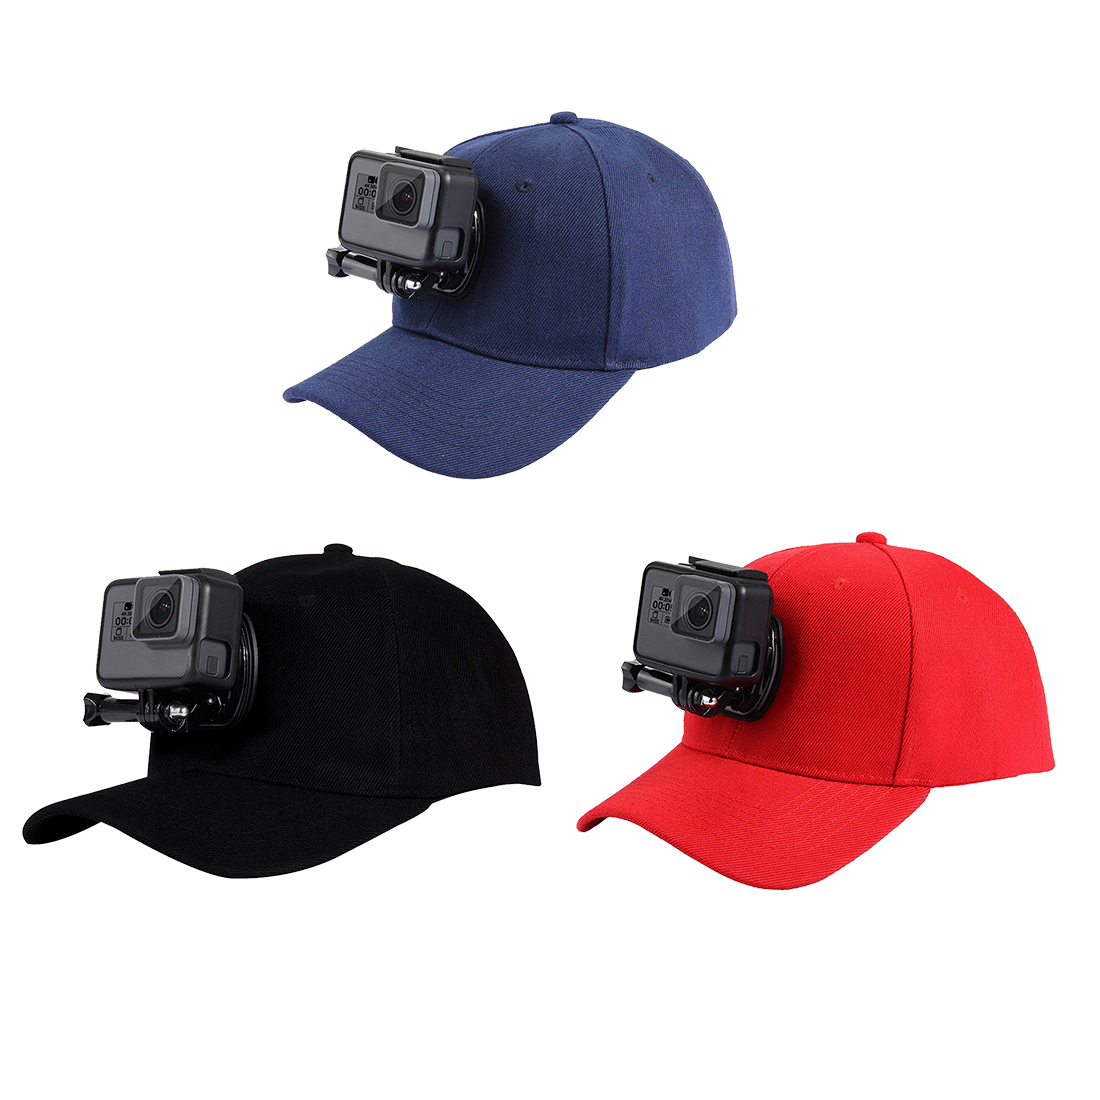 For Gopro Accessory Adjustable Canvas Sun Hat Cap for Hero 5 4 3 SJCAM SJ7 SJ6 M20 Eken H9 H9R H8 Pro Yi 4K Sport Action Camera